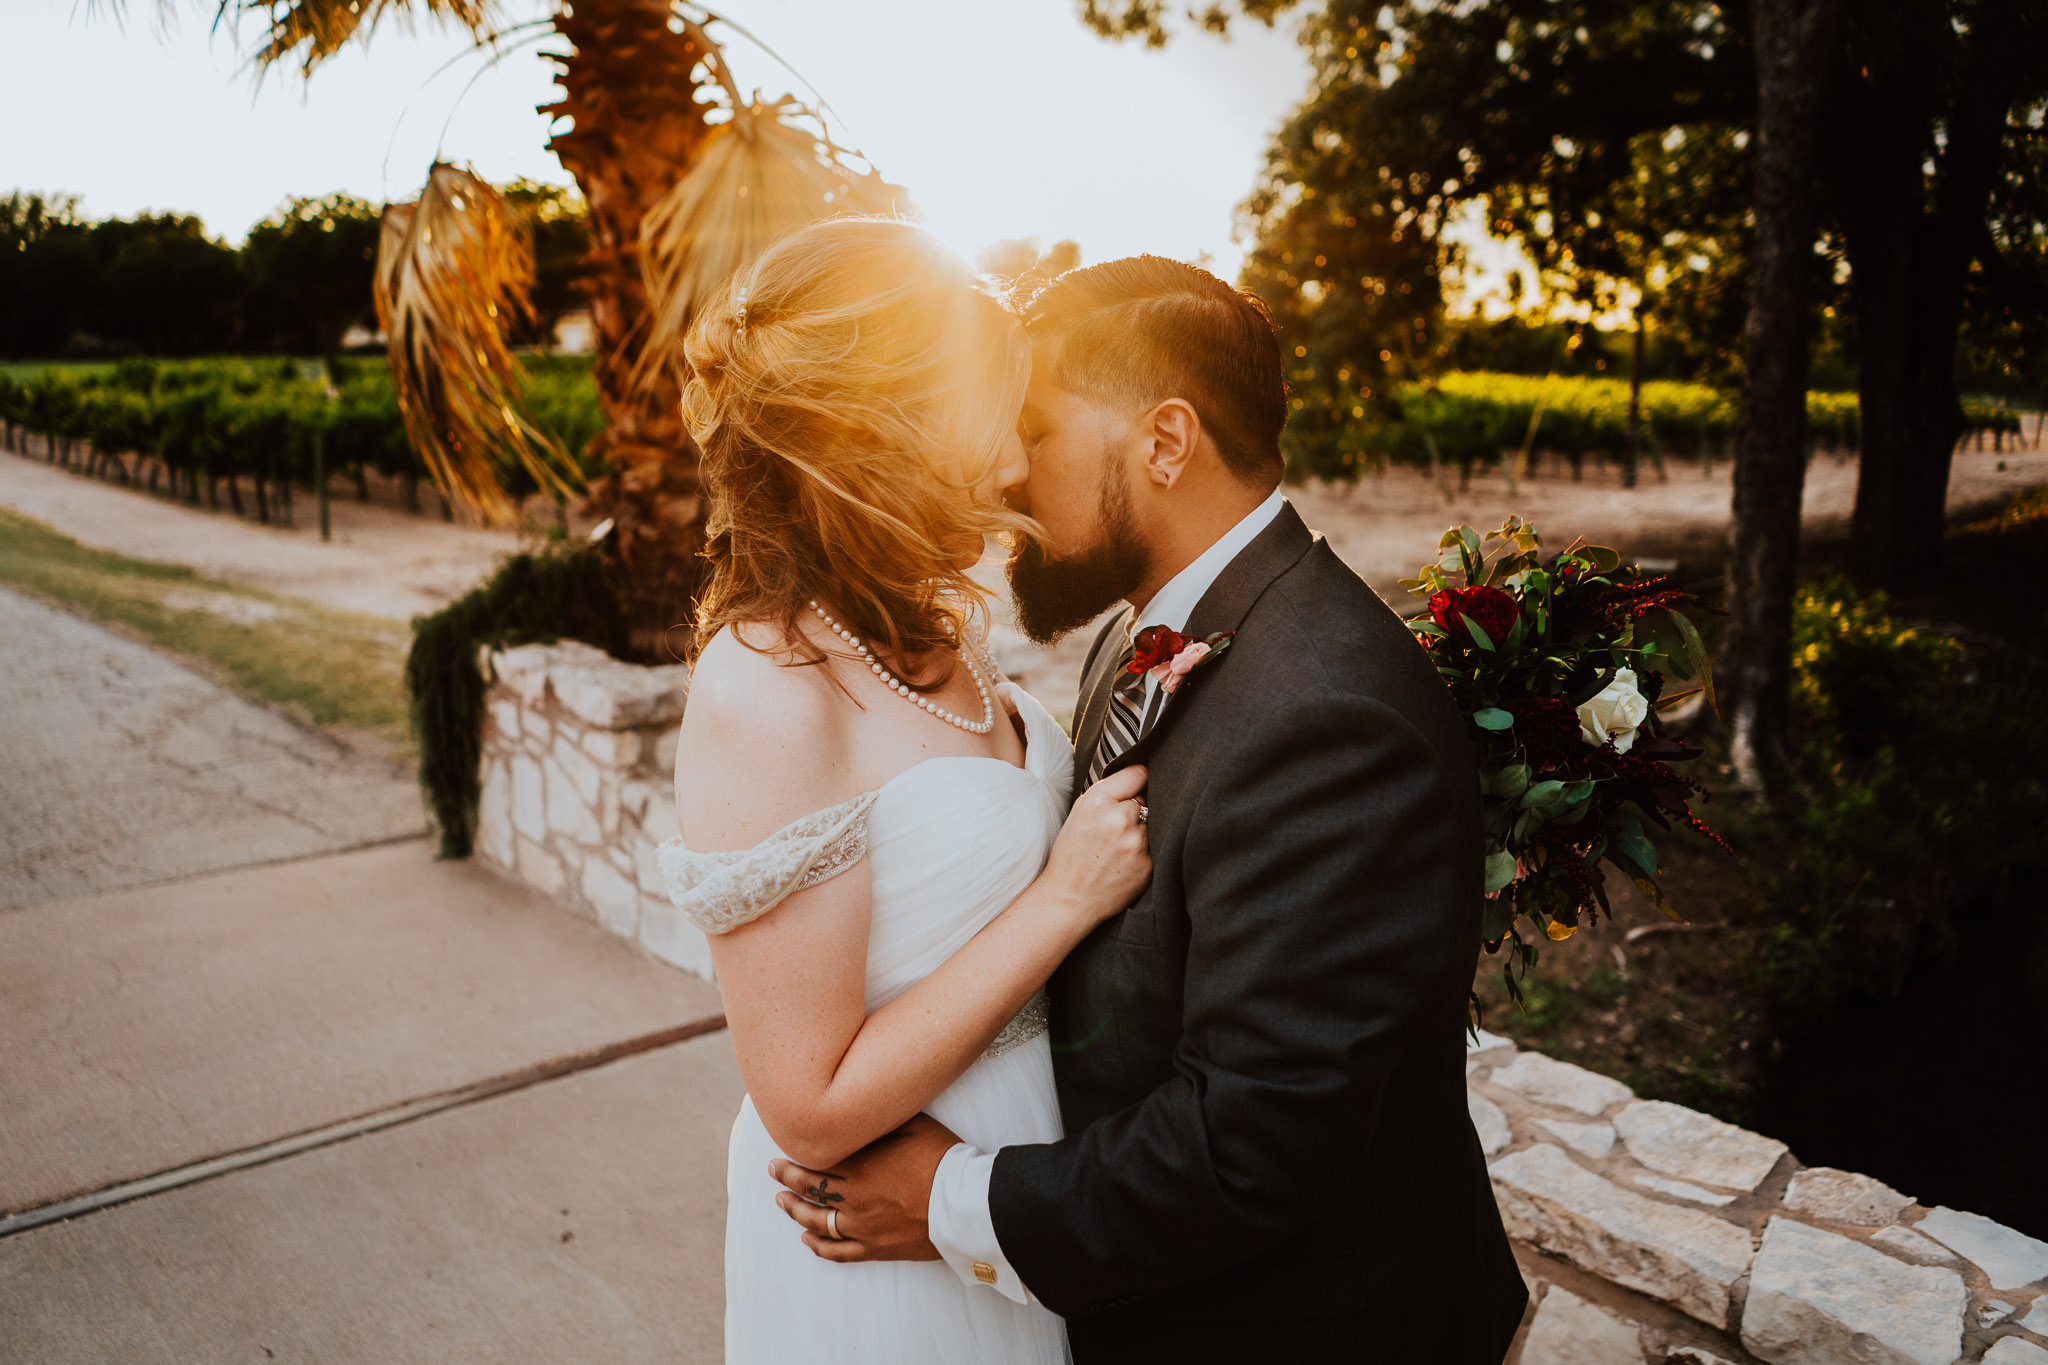 the wedding experience - A guide to planning your wedding. In this guide I will go over things from having a first look or not, lighting for your reception, getting ready and making sure the wedding day is first and foremost for you.